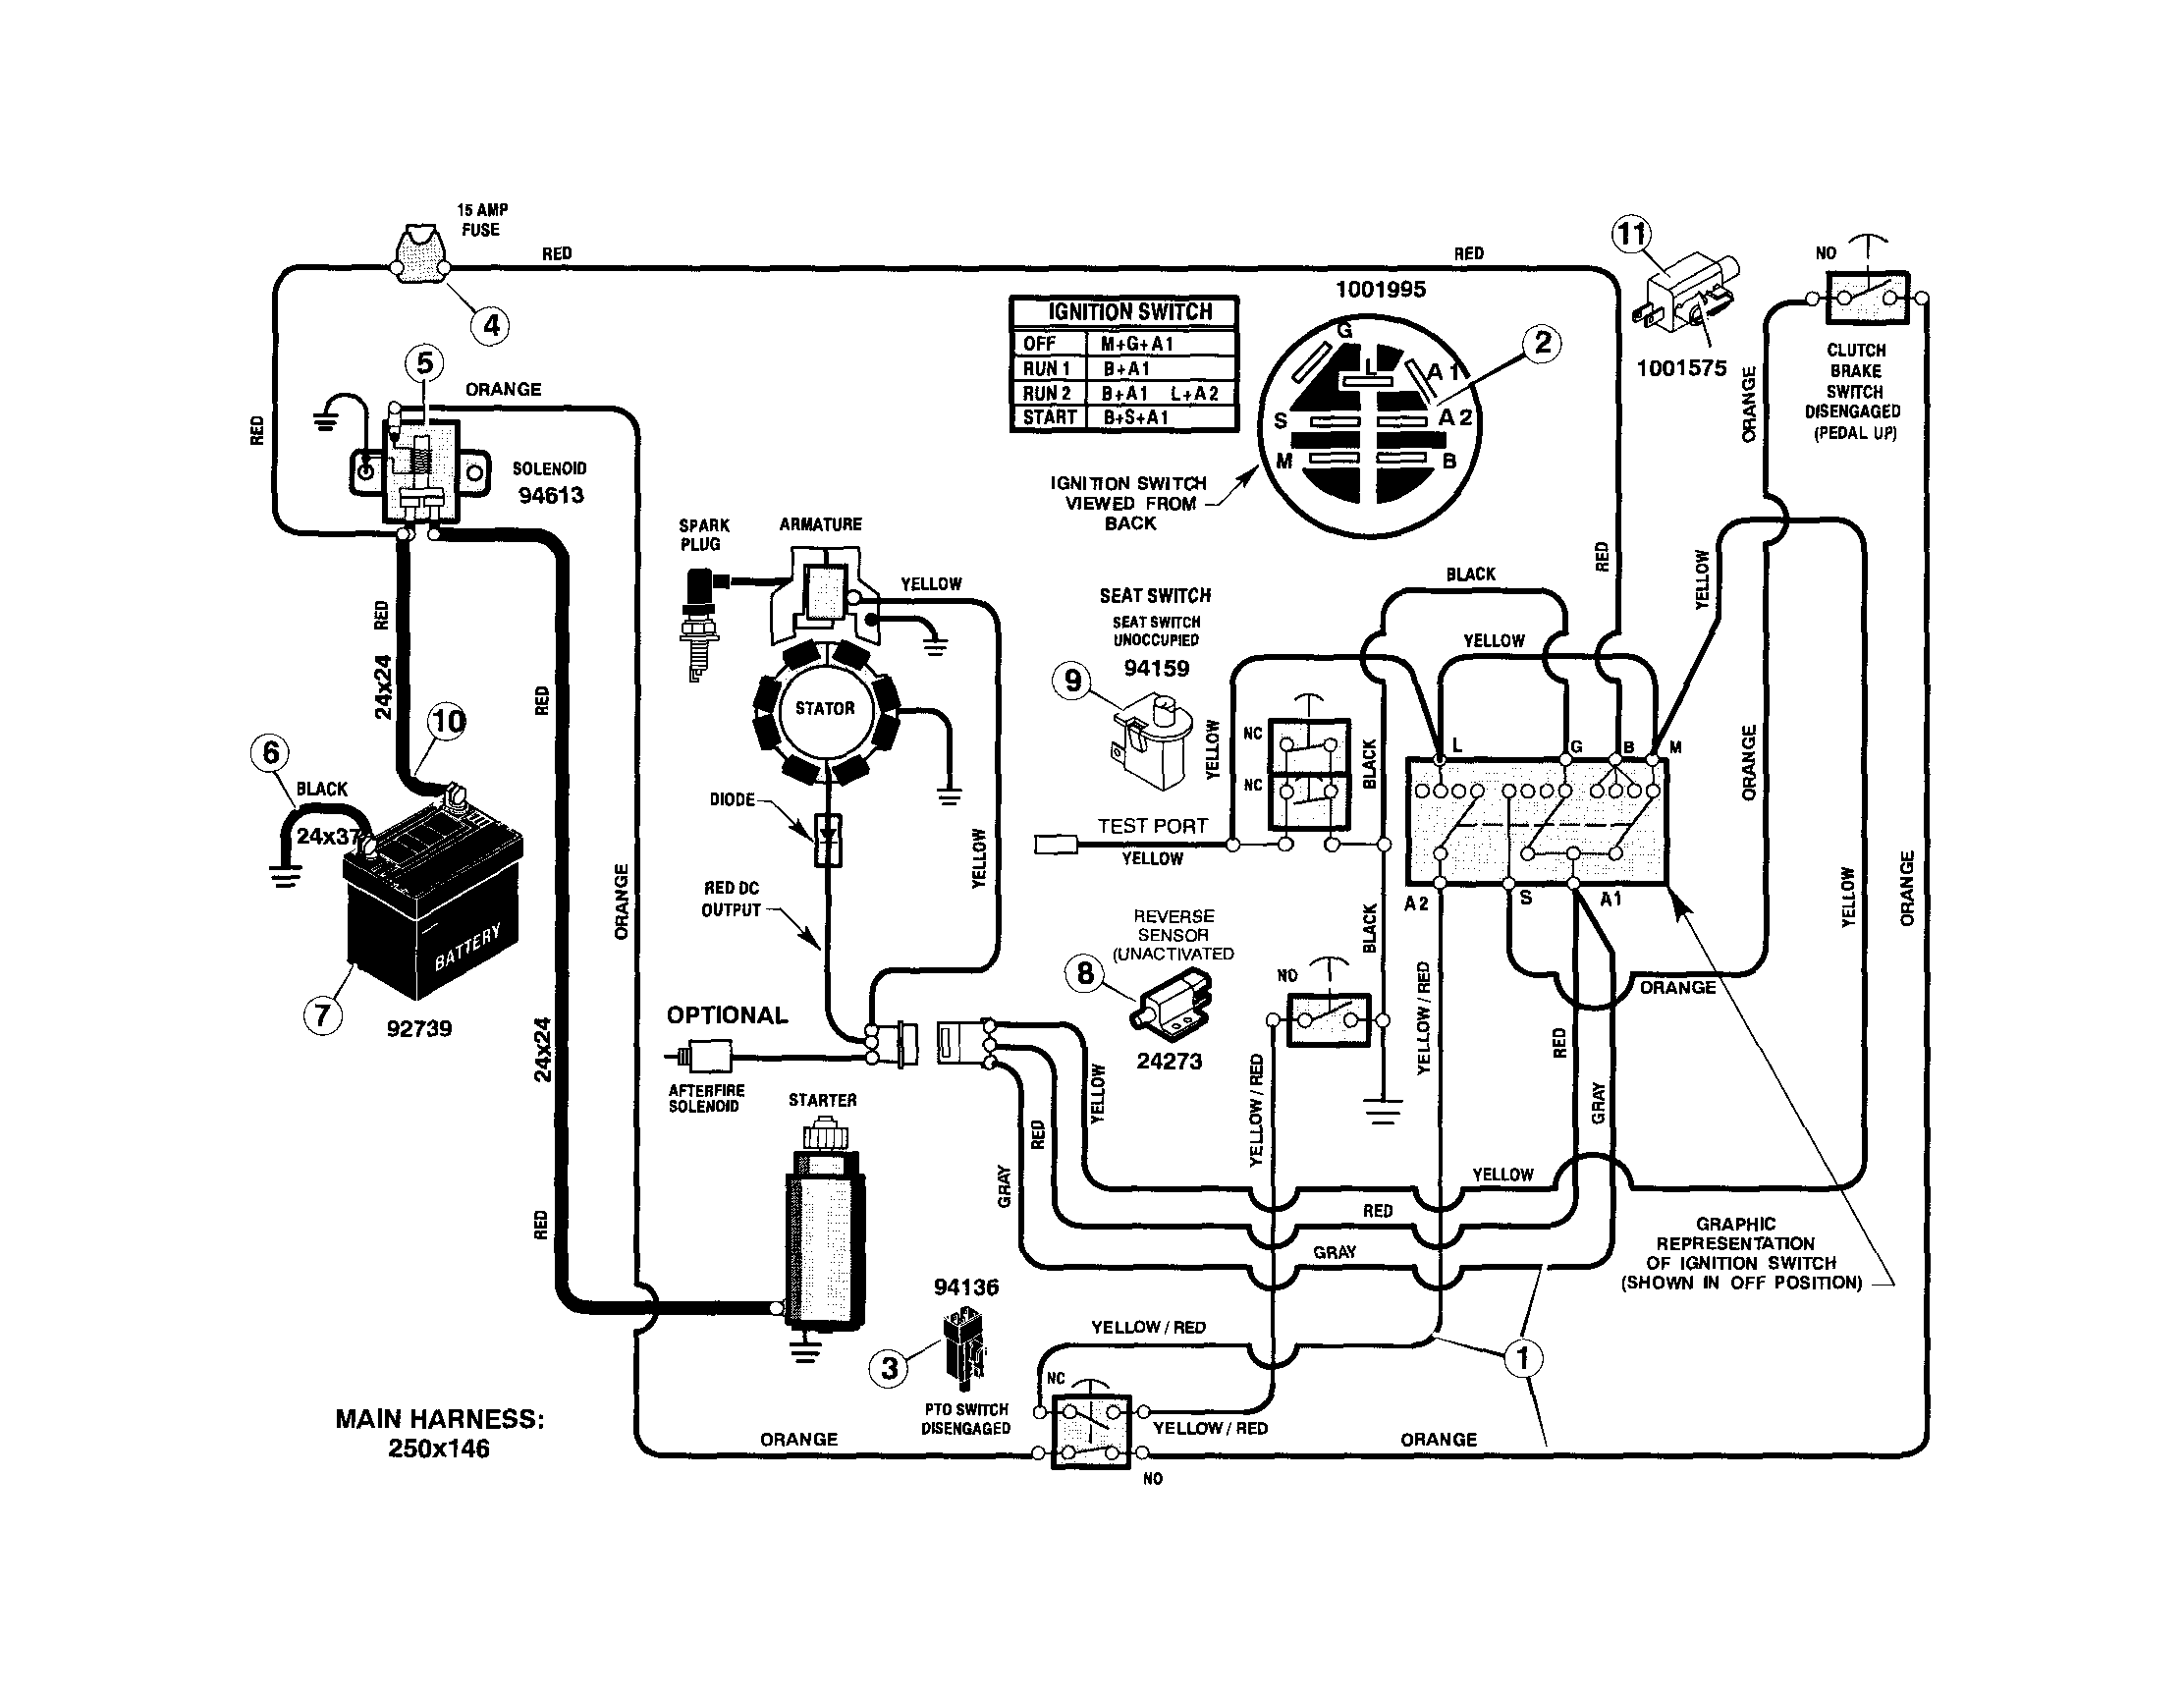 DIAGRAM] 1988 Bayliner Fuse Diagram FULL Version HD Quality Fuse Diagram -  OUTLETDIAGRAM.ANTEPRIMAMONTEPULCIANODABRUZZO.IT | Bayliner Ignition Wiring Diagram |  | Anteprima Montepulciano D'Abruzzo